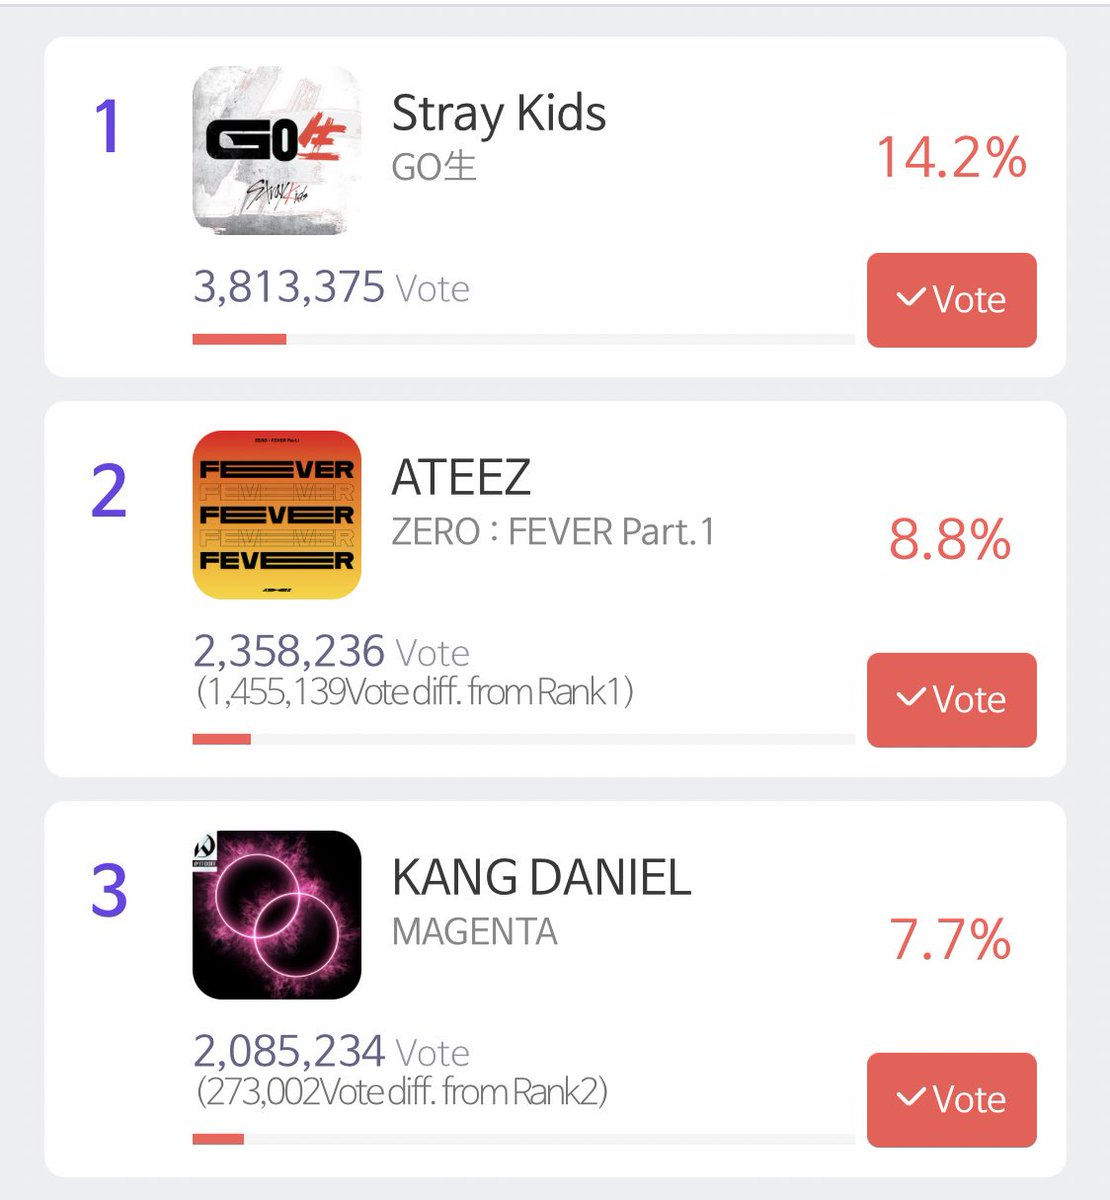 We are in 273Ks gap w 3 but we will lose it if we don't MOVE 🔥🔥   ⚠️PLS RT⚠️  Need 30-50 atiny to drop 10 votes ASAP to get us going to 274Ks  💥GOAL: 280Ks and 9%  JUST KEEP IT UP!! ✊  #ATINYto9Percent #ATINYtoTheTop @ATEEZofficial #에이티즈 #ATEEZ